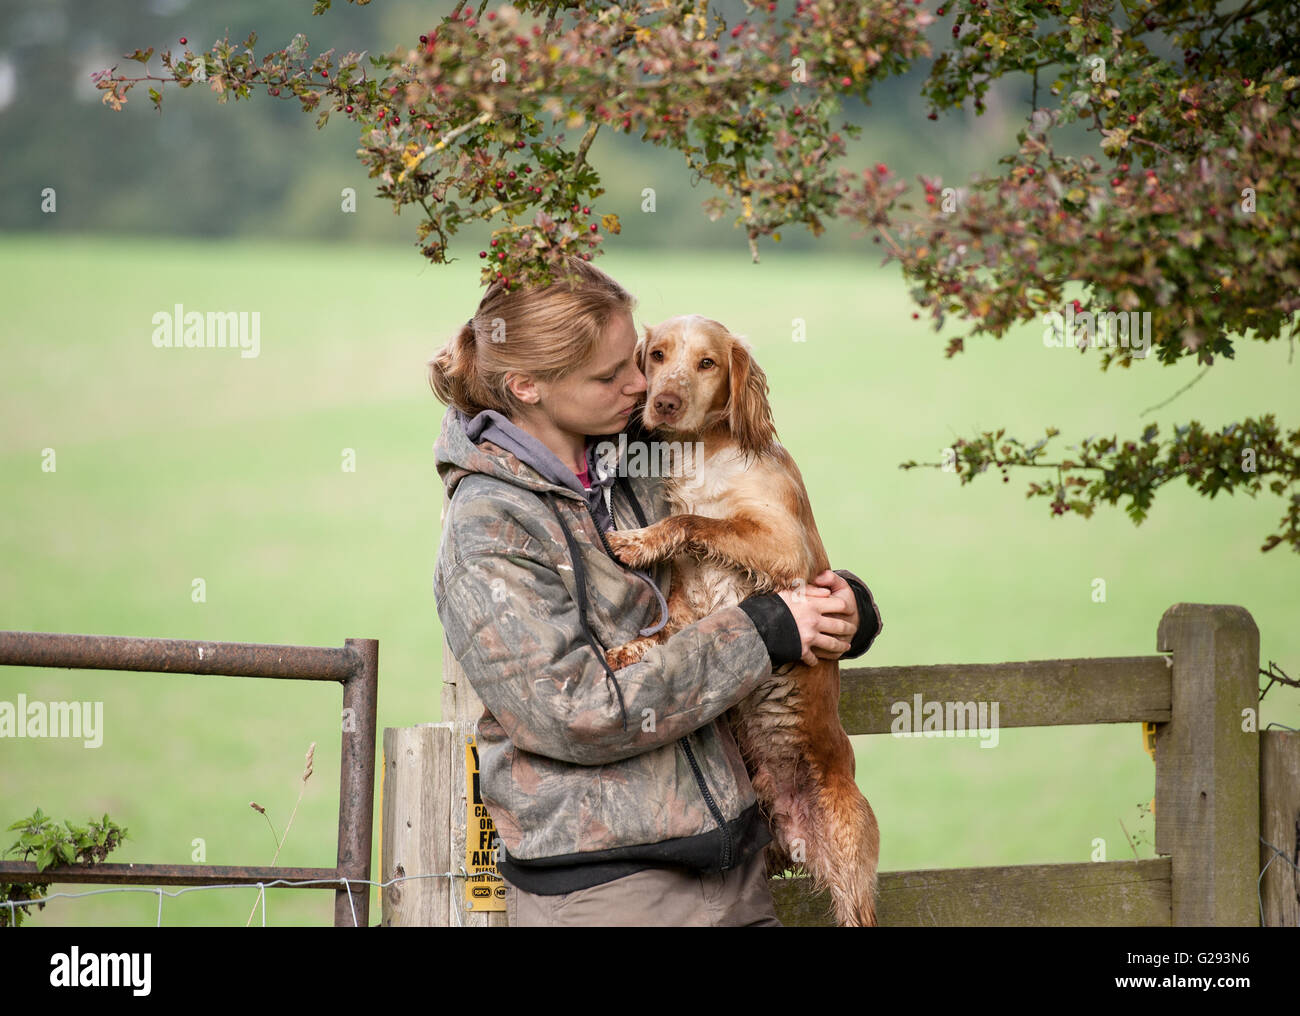 girl with cocker spaniel - Stock Image